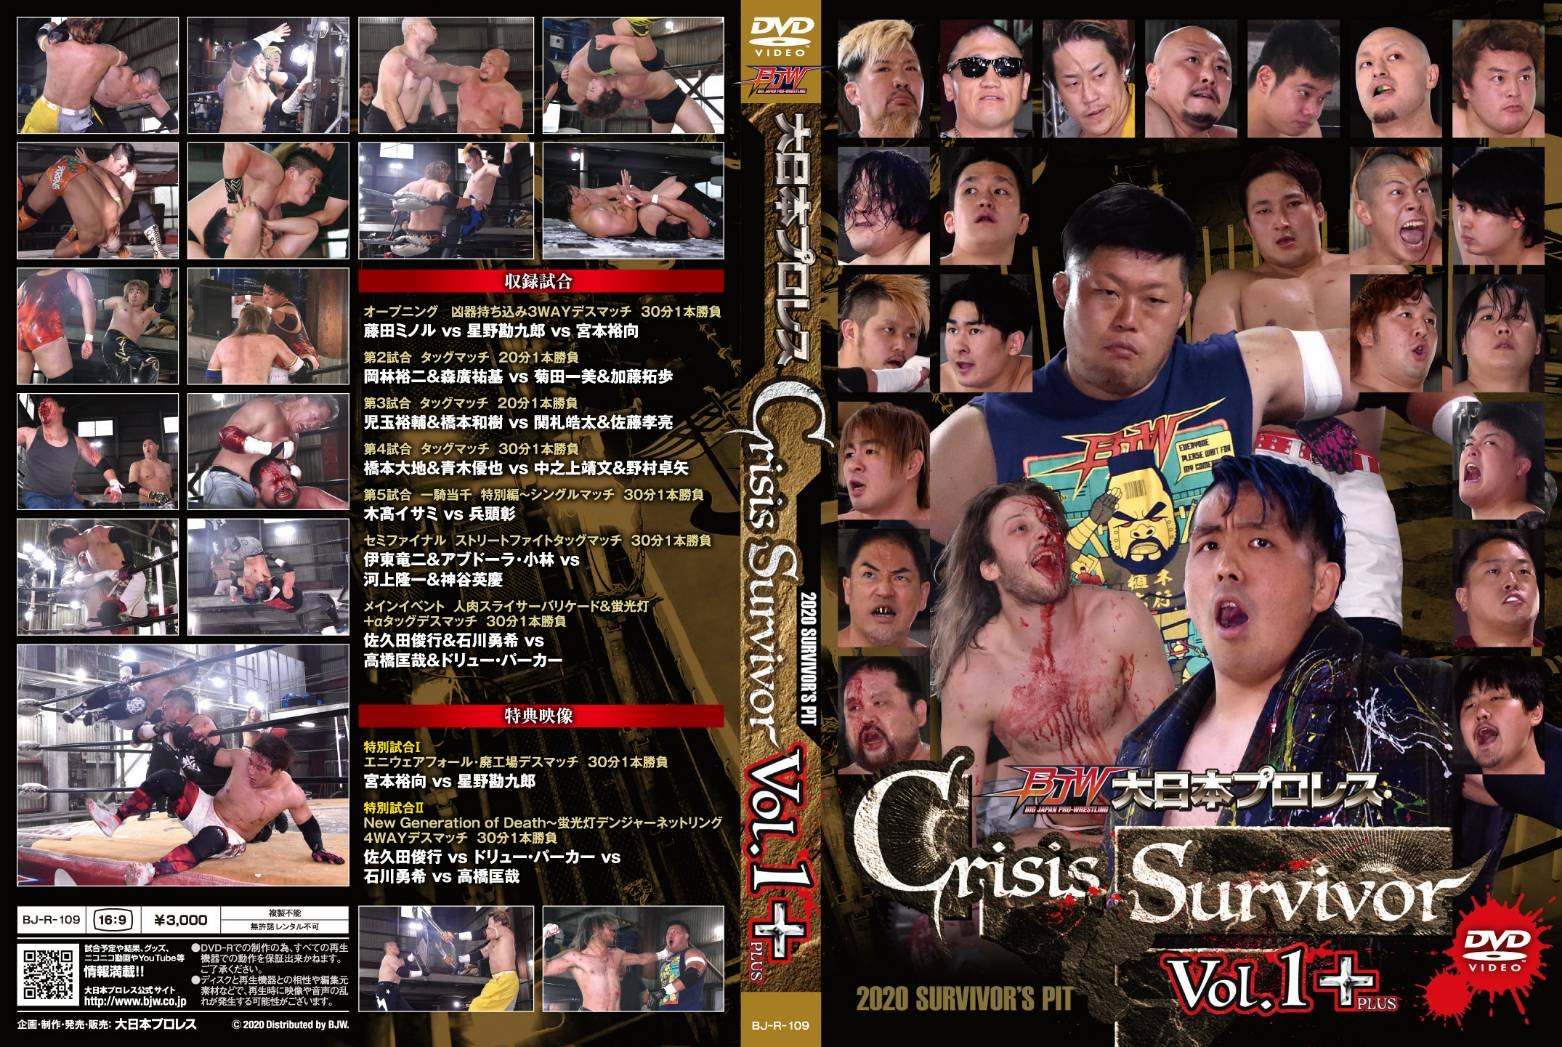 【DVD-R】Crisis Survivor・Vol.1+